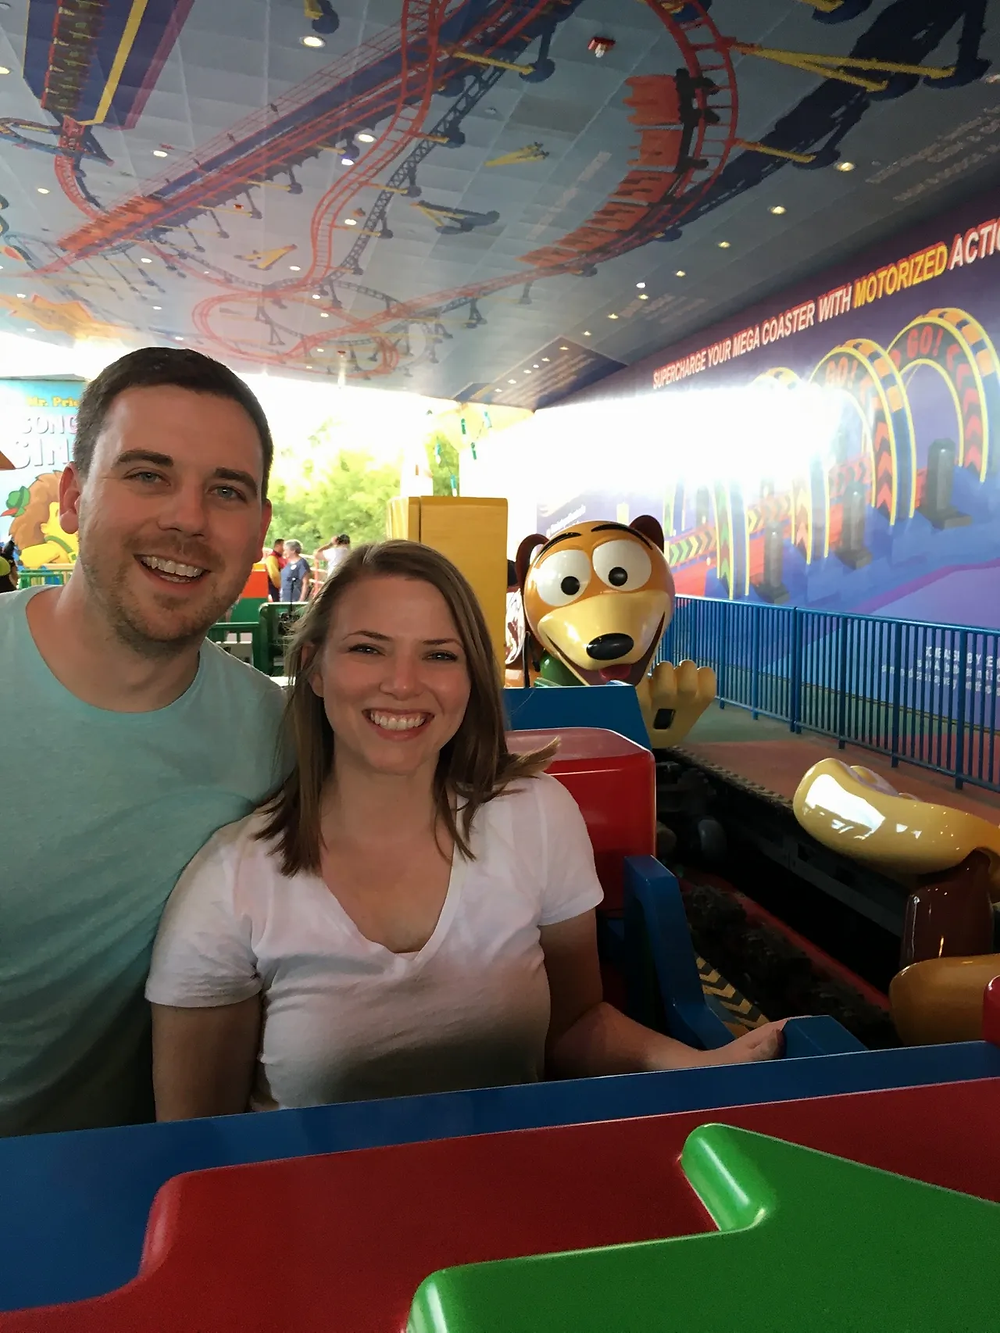 2 people in the boarding area for the roller coaster Slinky Dog Dash in Toy Story Land at Disney's Hollywood Studios